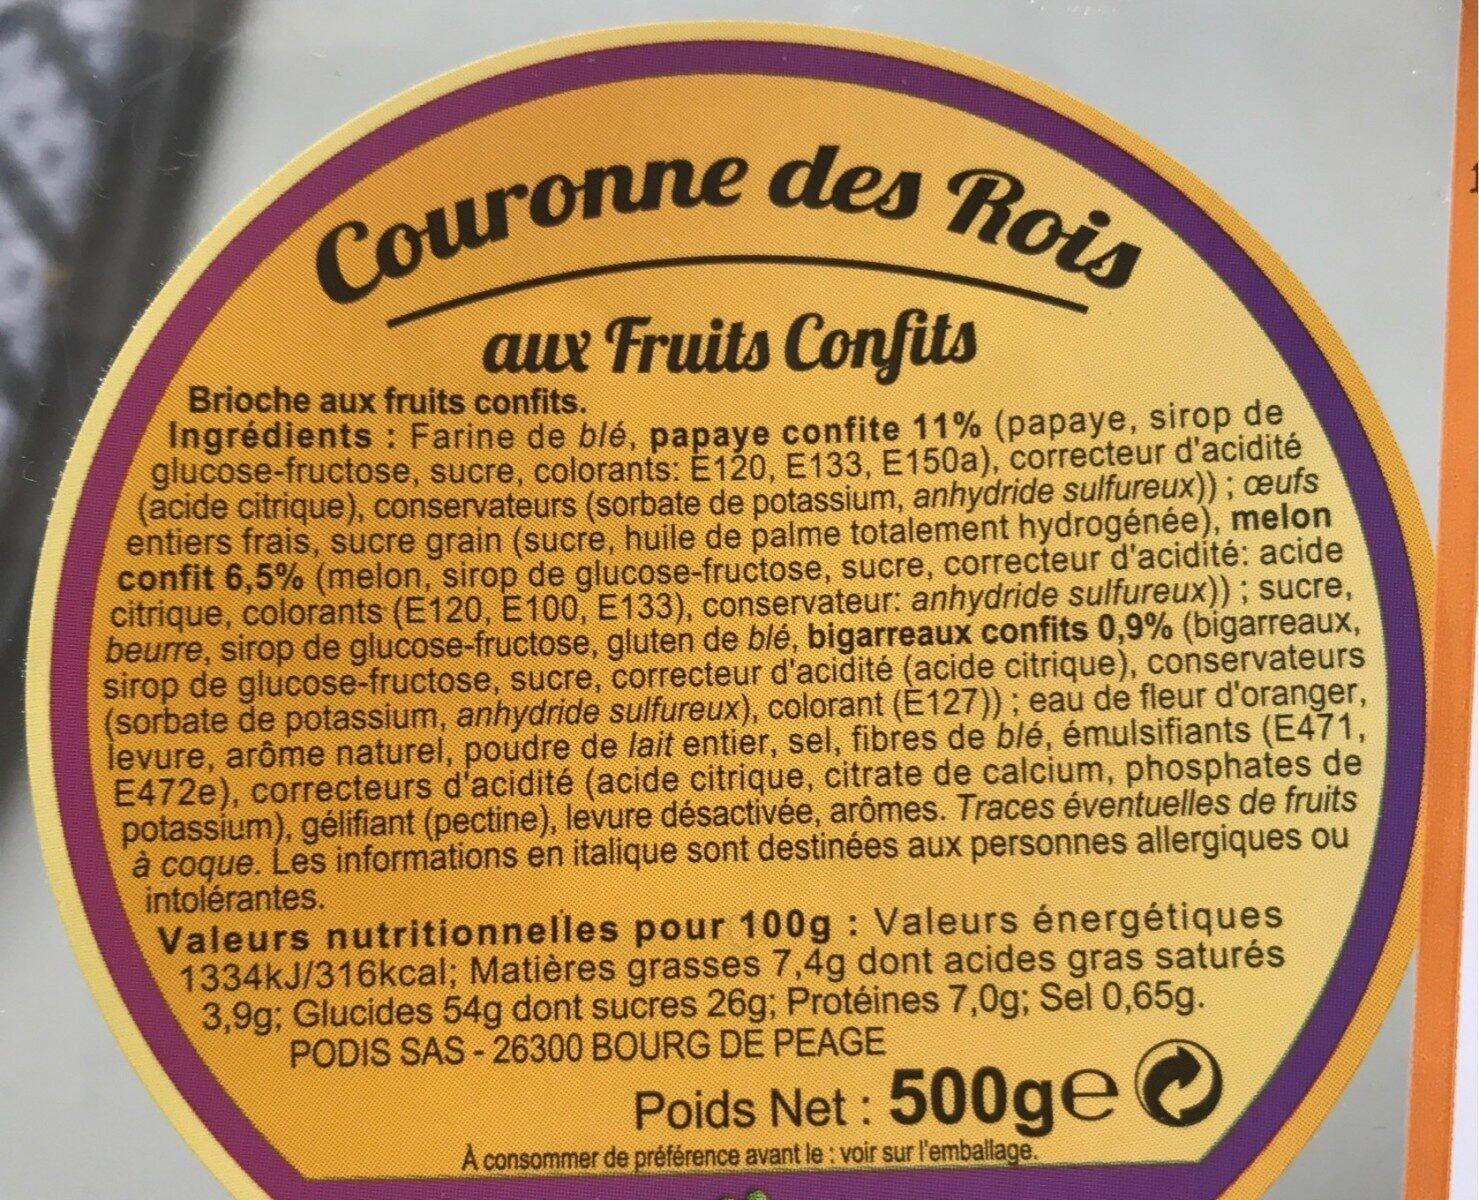 Couronne rois fruits confirs - Voedingswaarden - fr